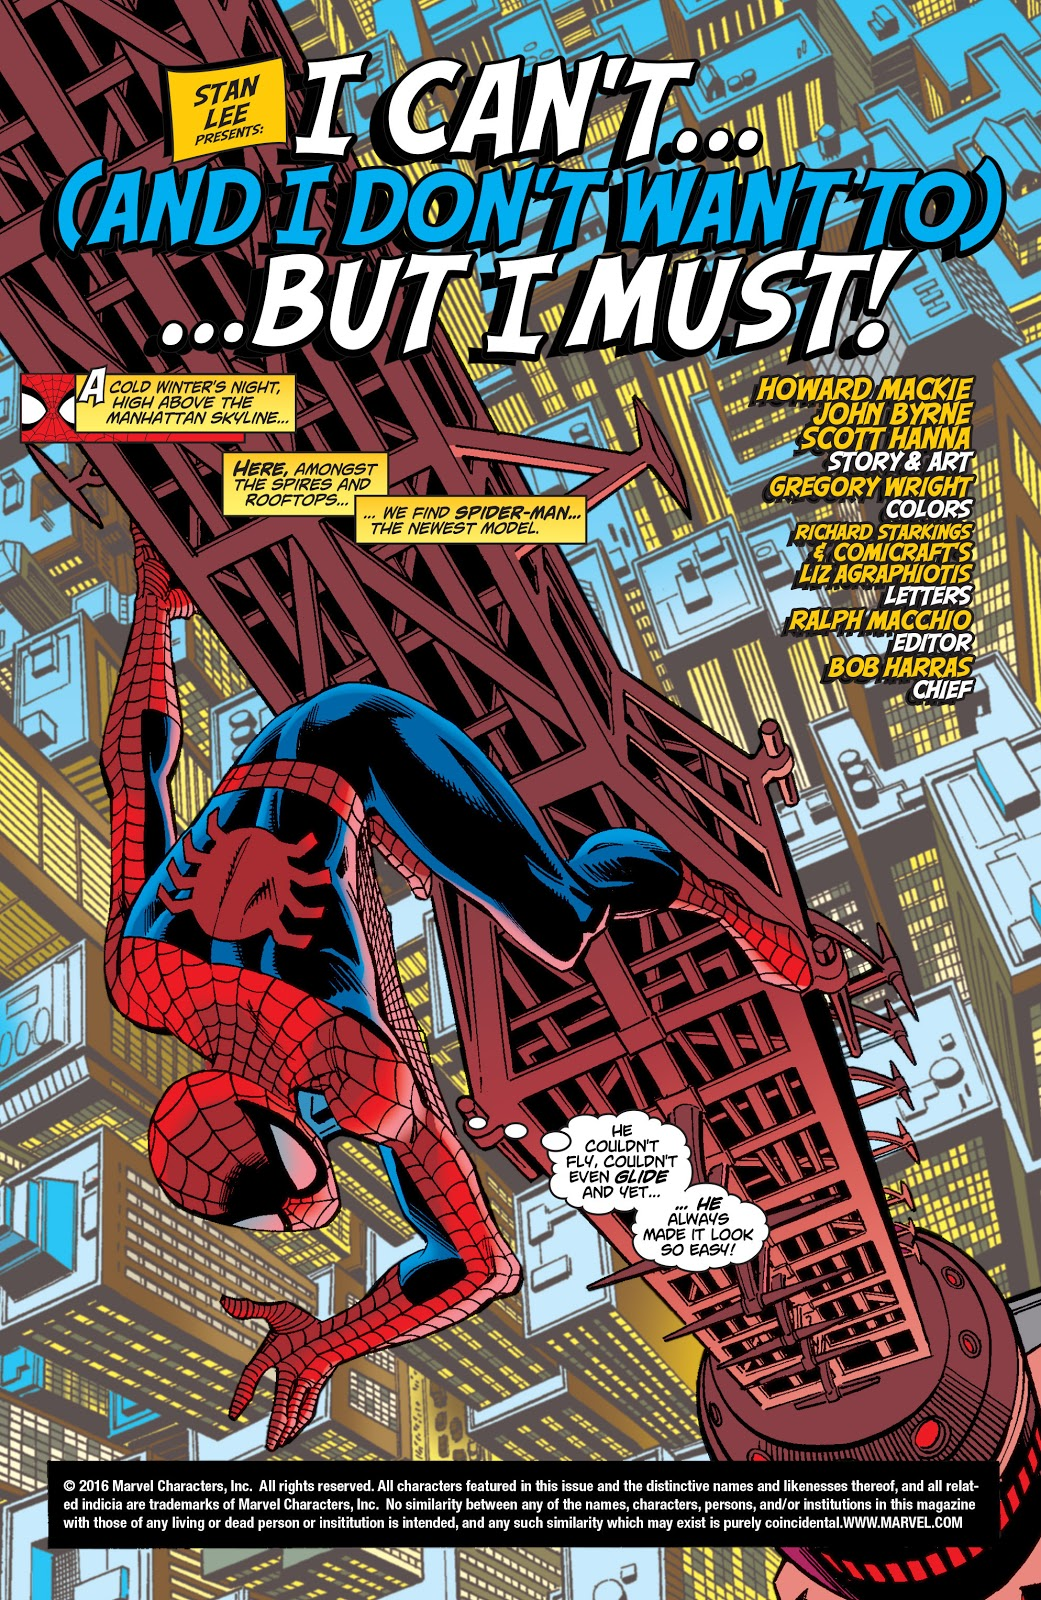 The Amazing Spider-Man Vol. 2 #2